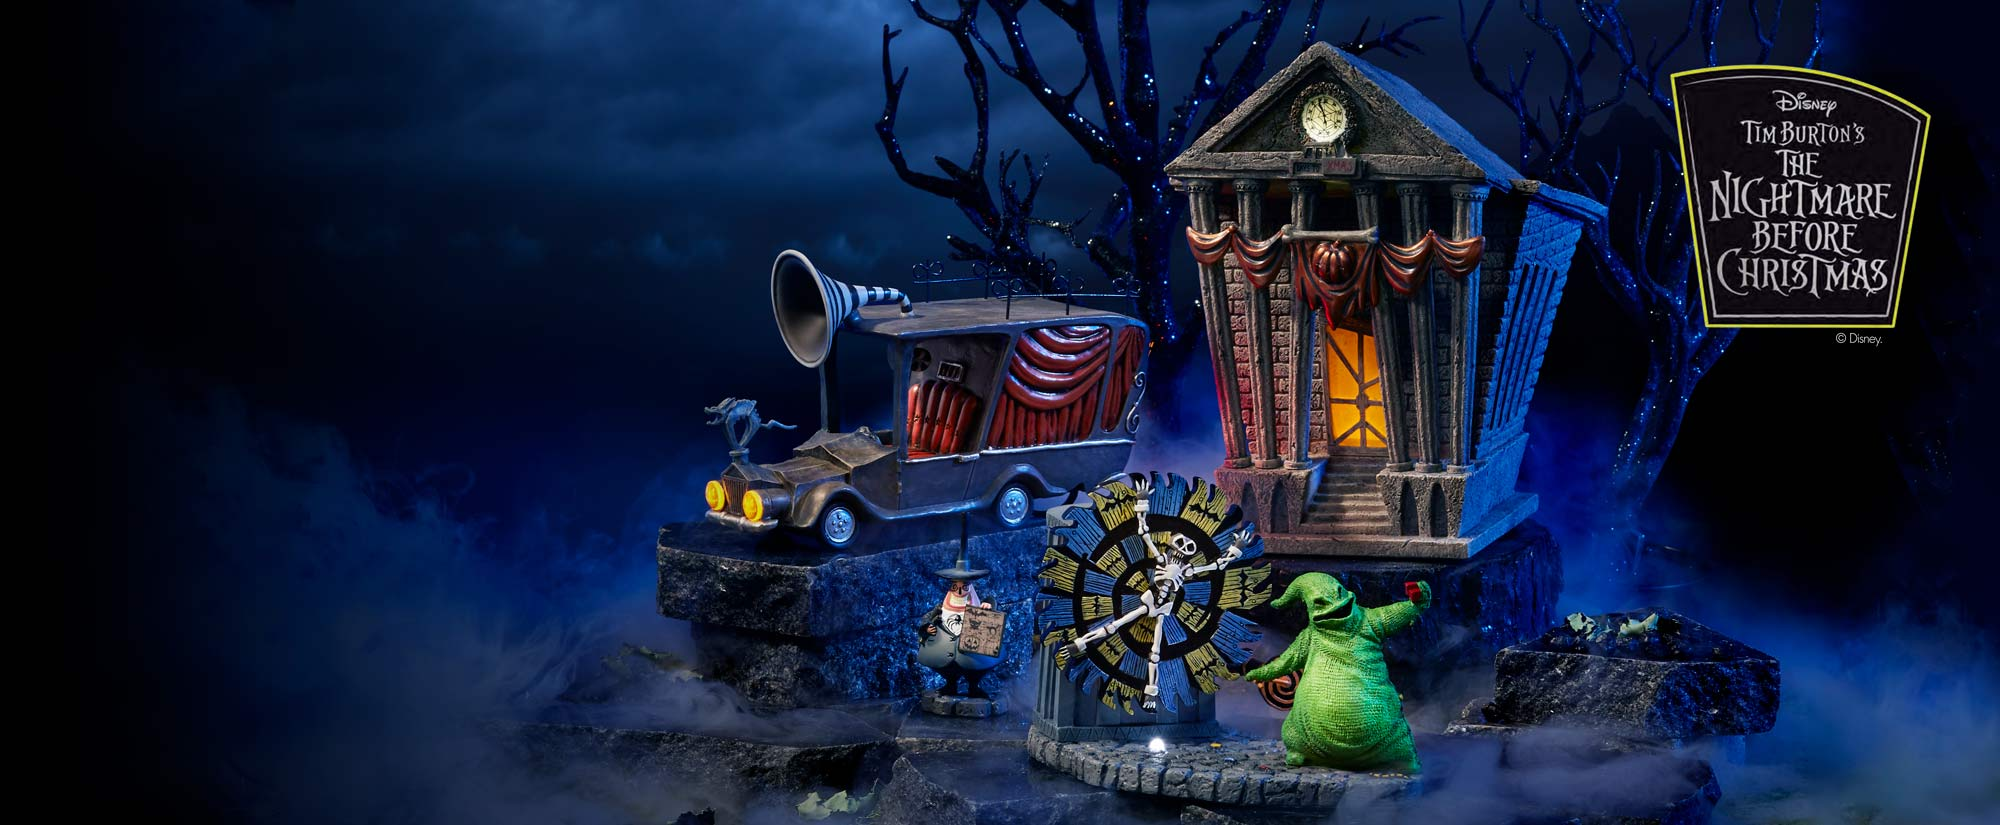 Shop the Nightmare Before Christmas Village